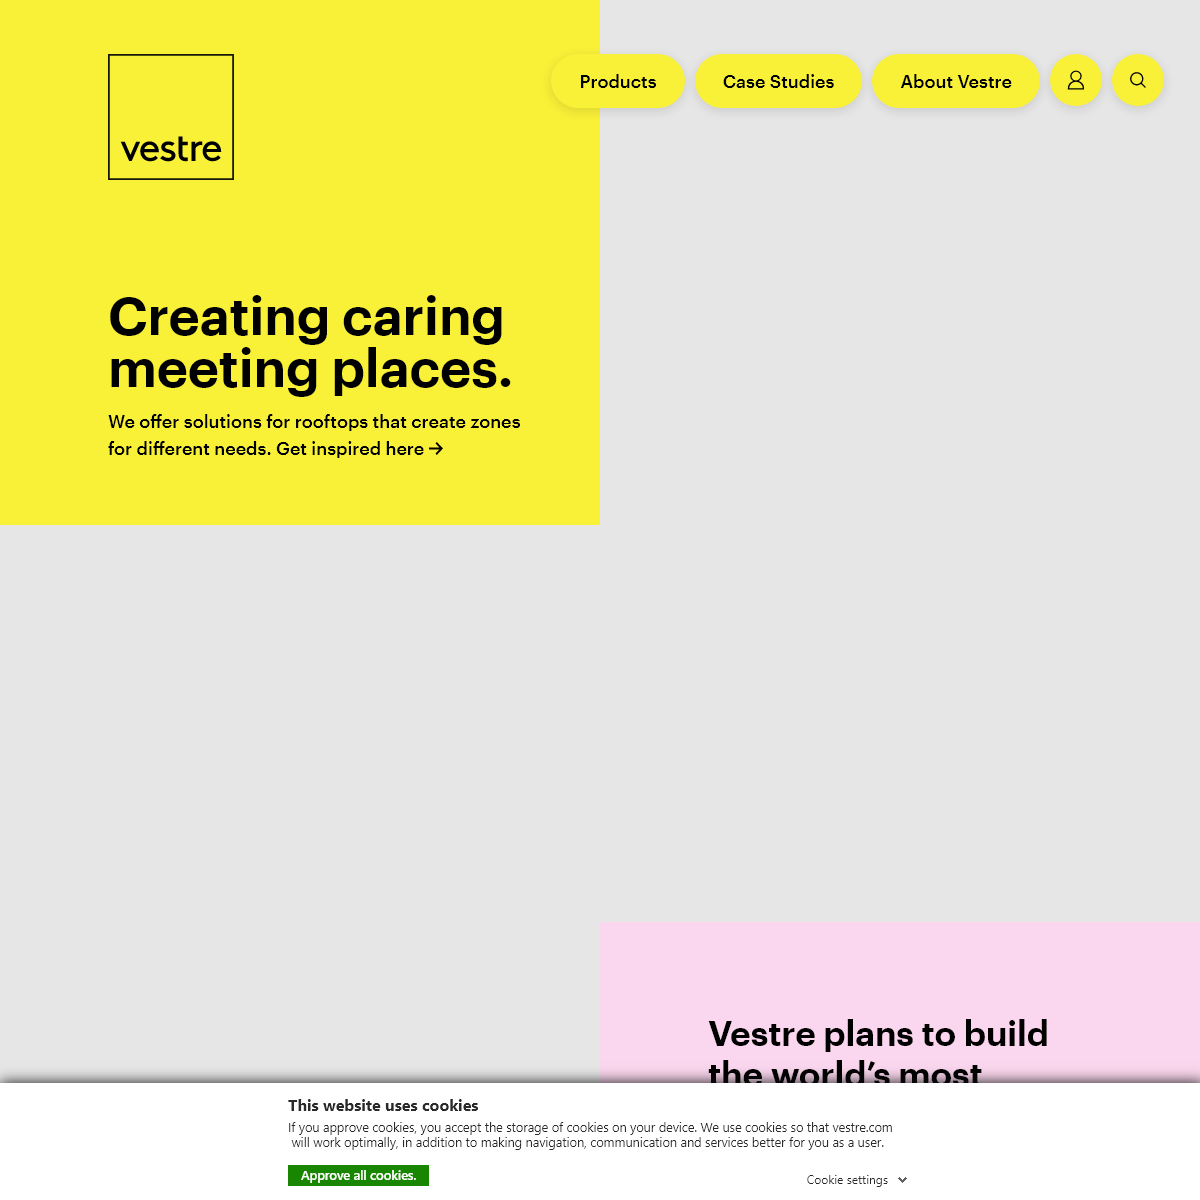 Vestre - Creating caring meeting places.